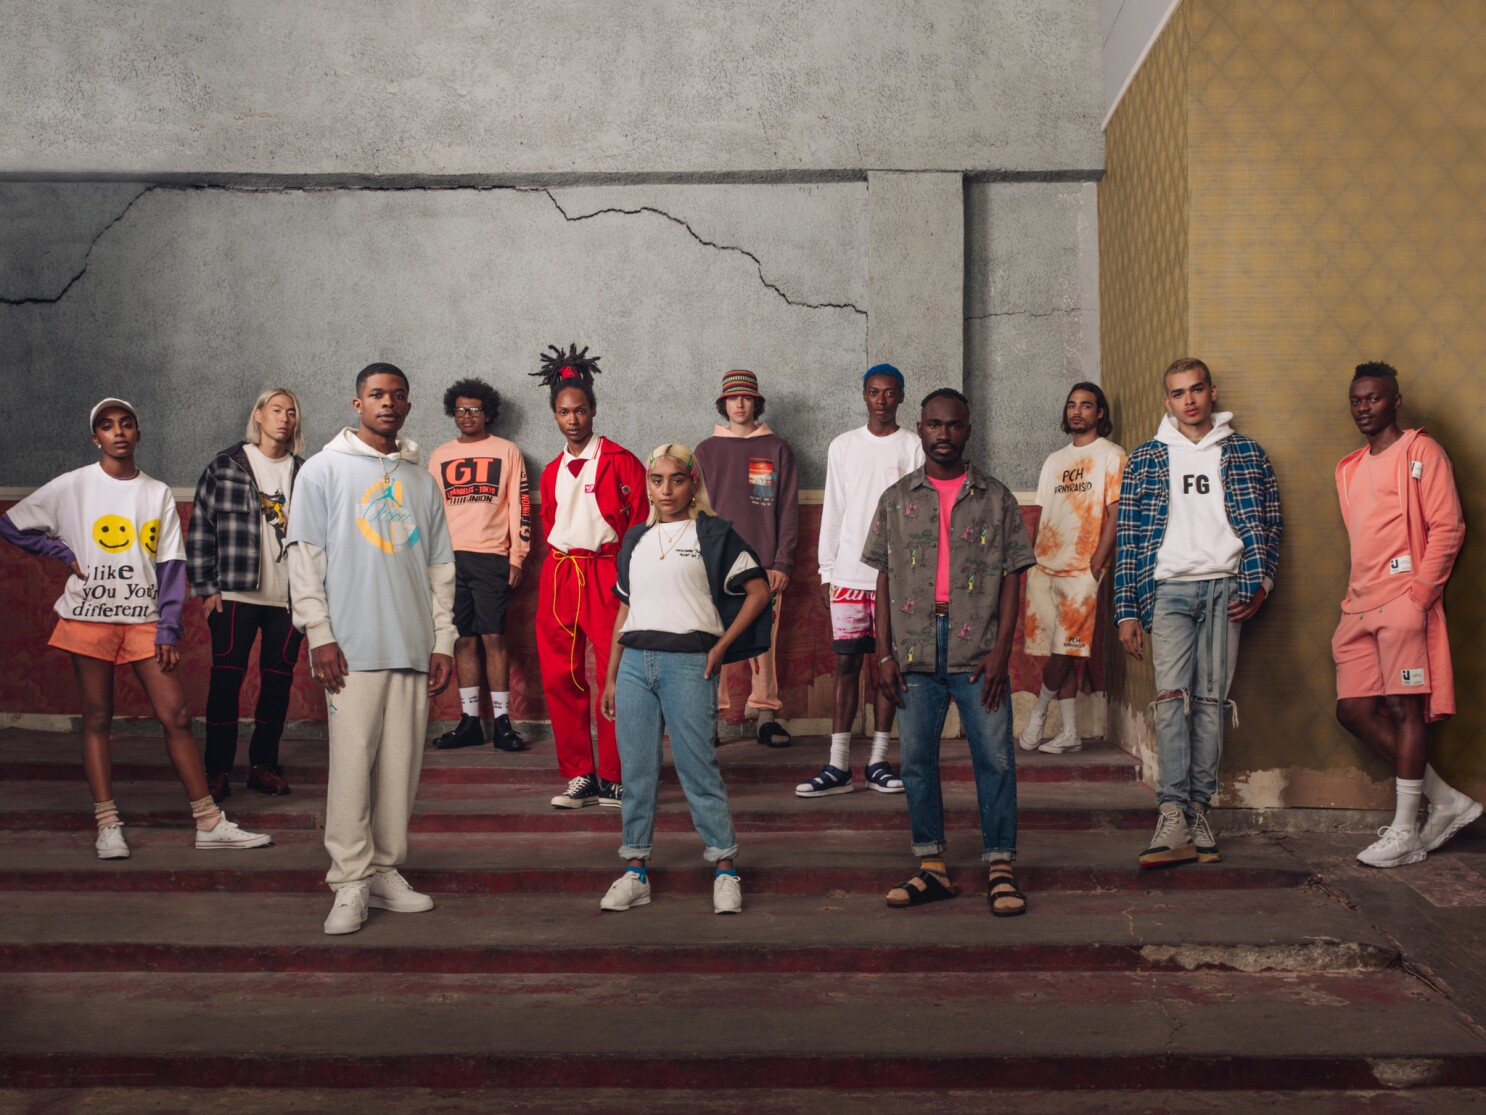 Nordstrom teams up with L A 's Union on streetwear-inspired